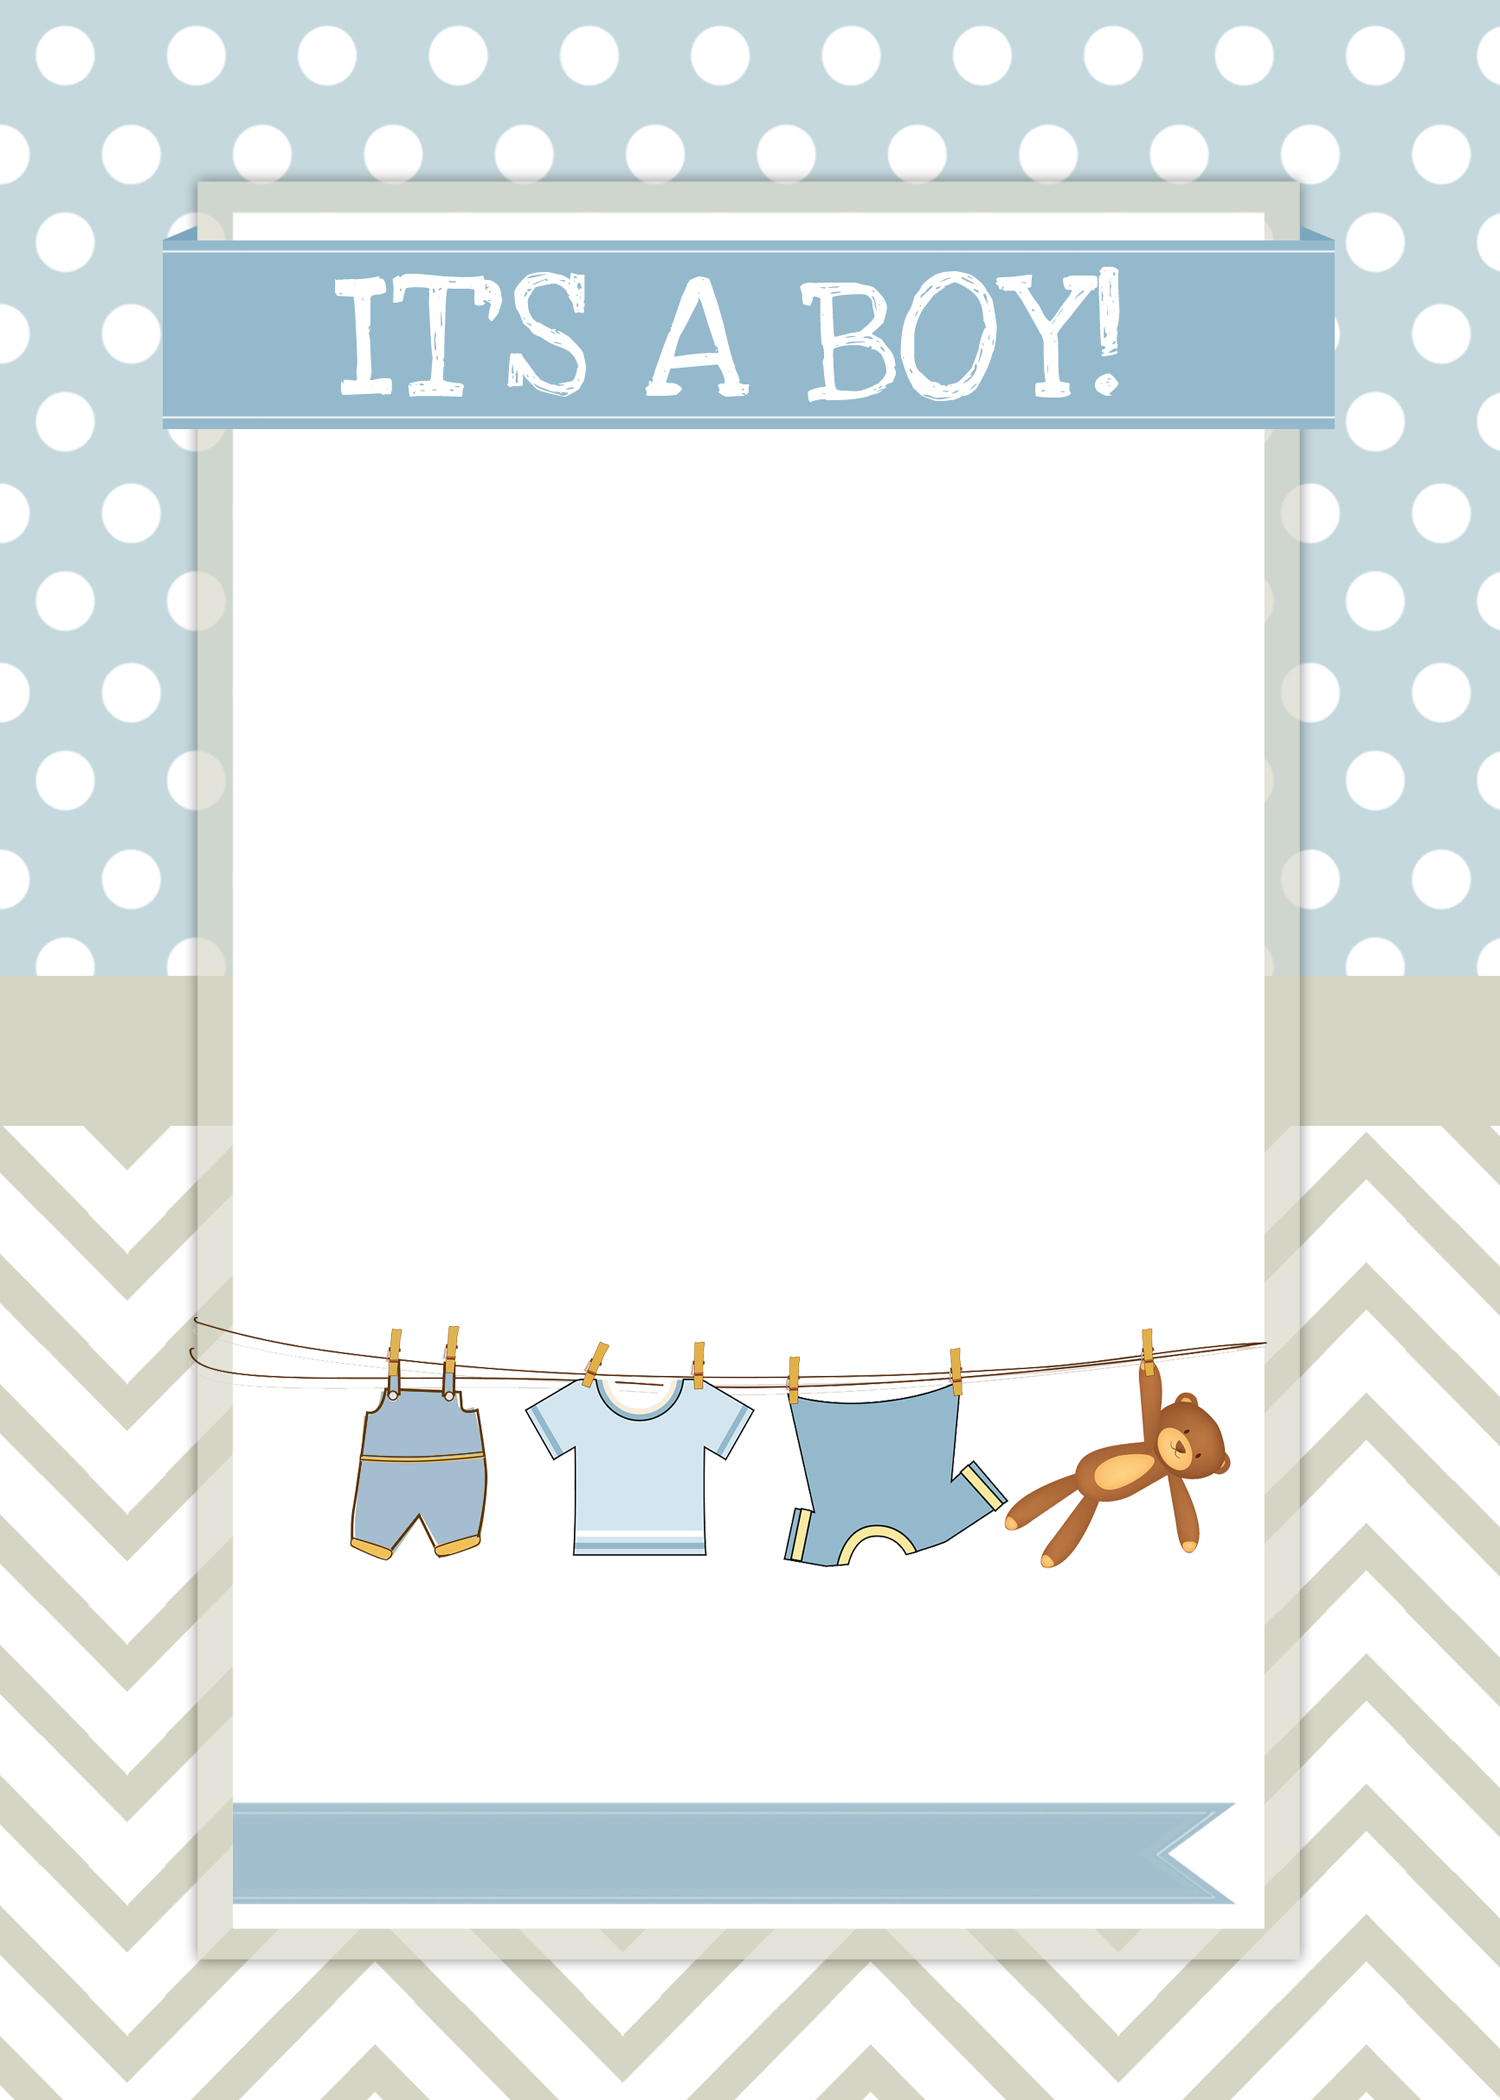 Free Baby Shower Images Boy, Download Free Clip Art, Free.